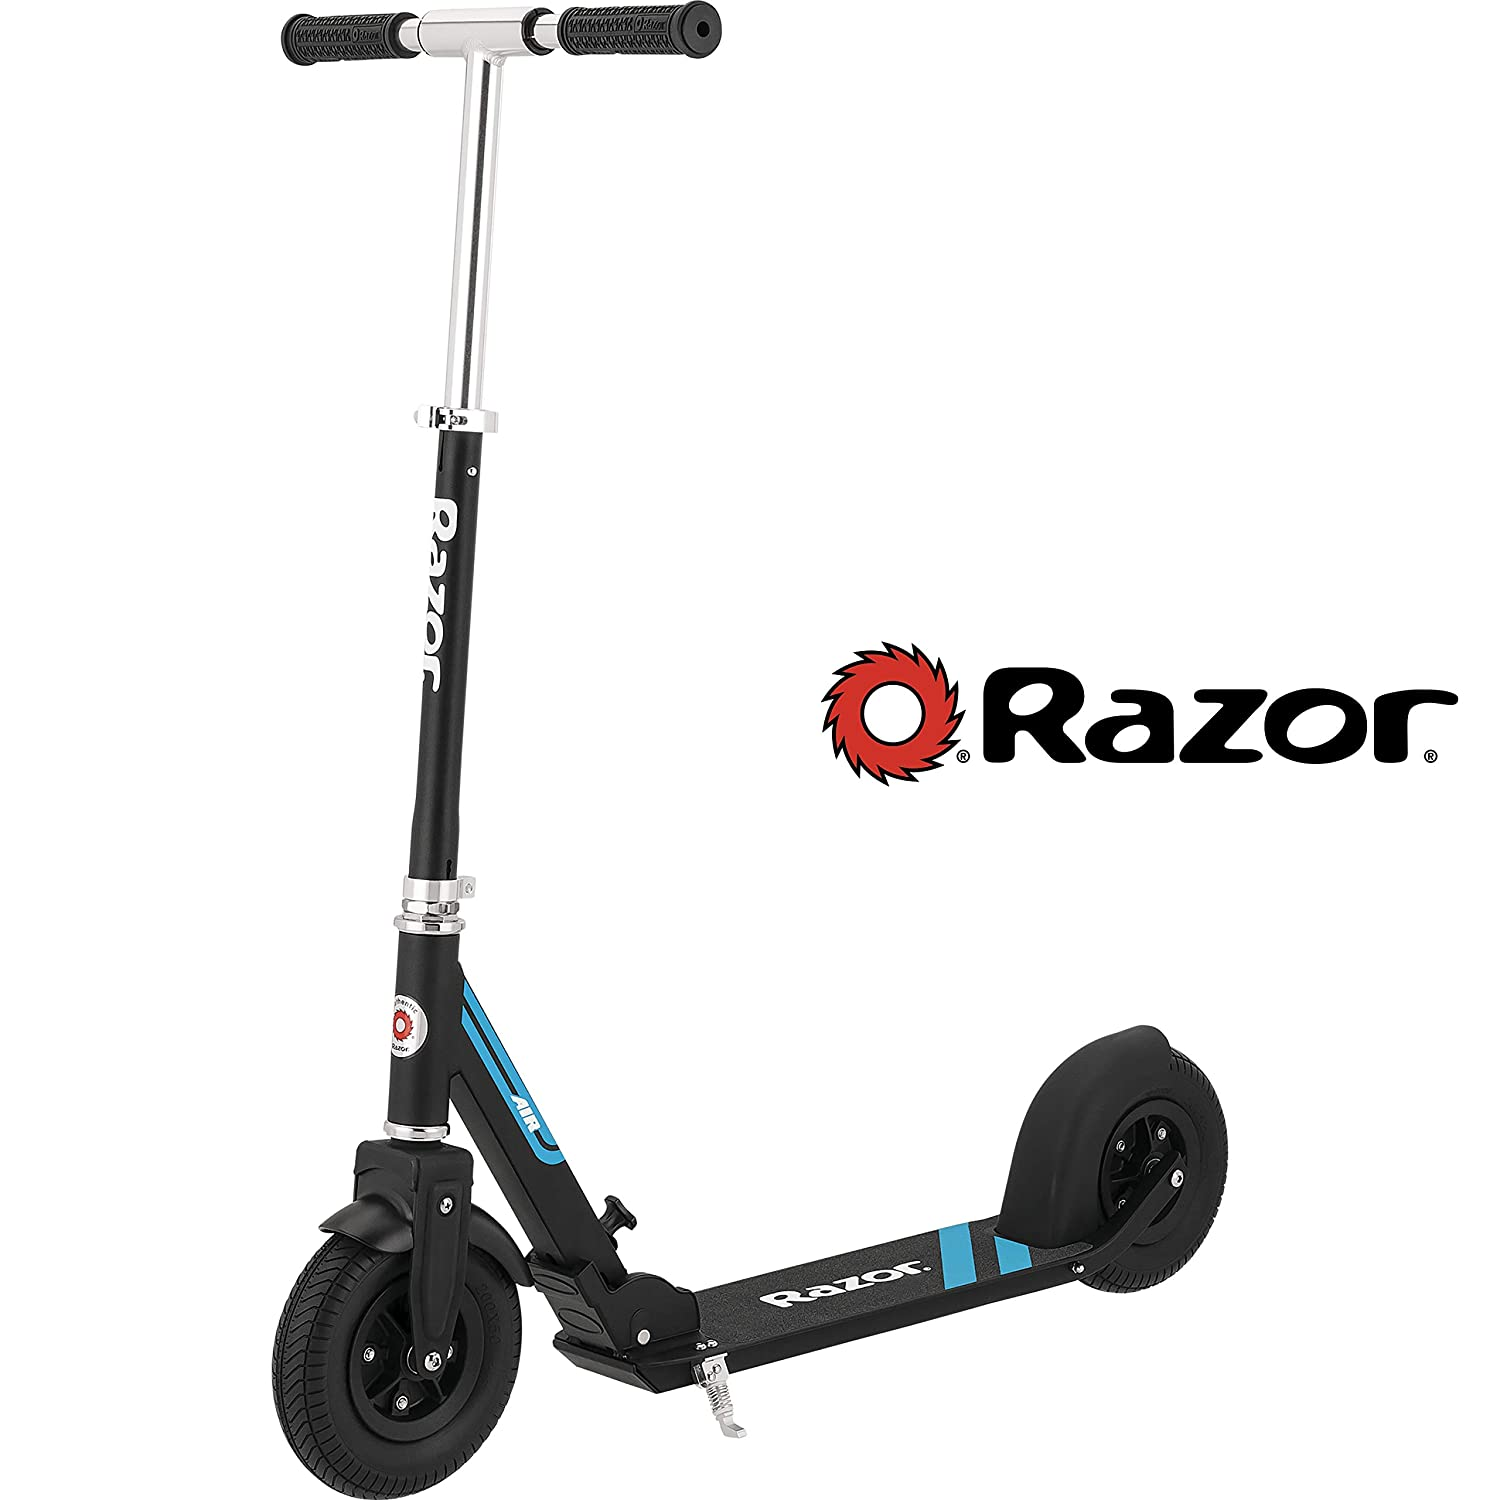 Amazon.com : Razor A5 Air Kick Scooter - Black - FFP ...